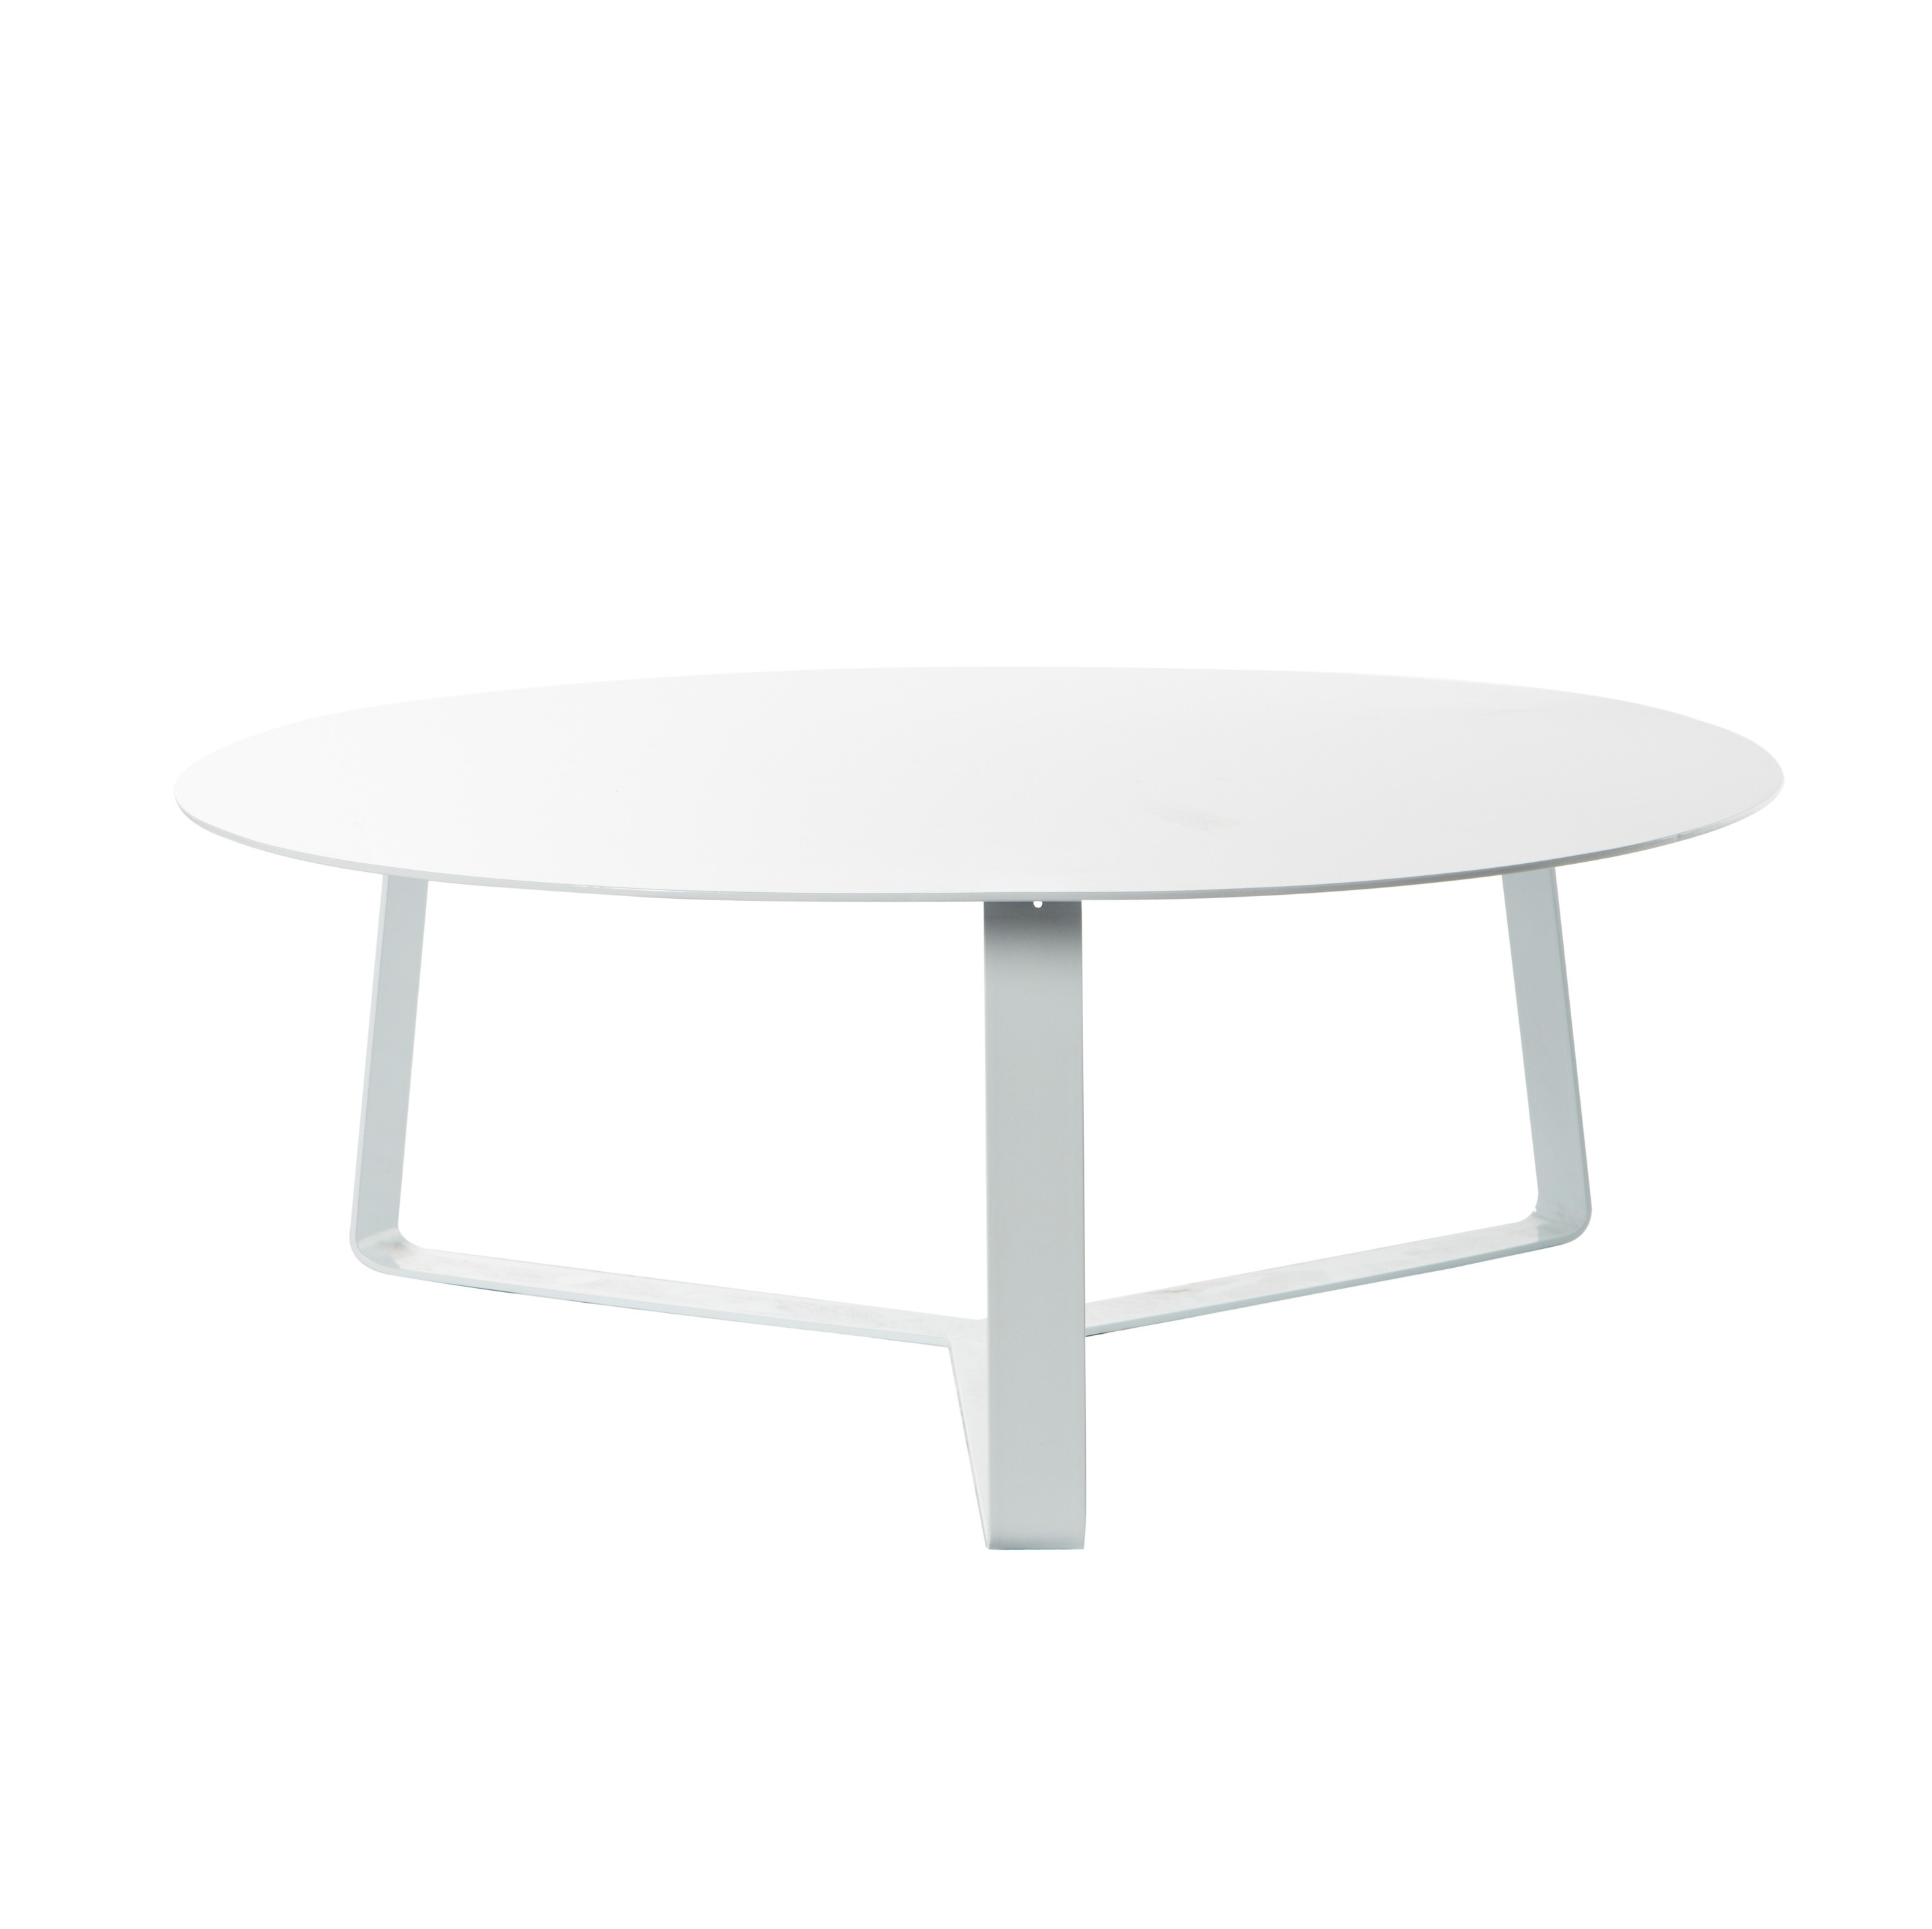 Furniture Hero-Images Coffee-Side-Tables-and-Trolleys cancun-ali-round-coffee-table-02